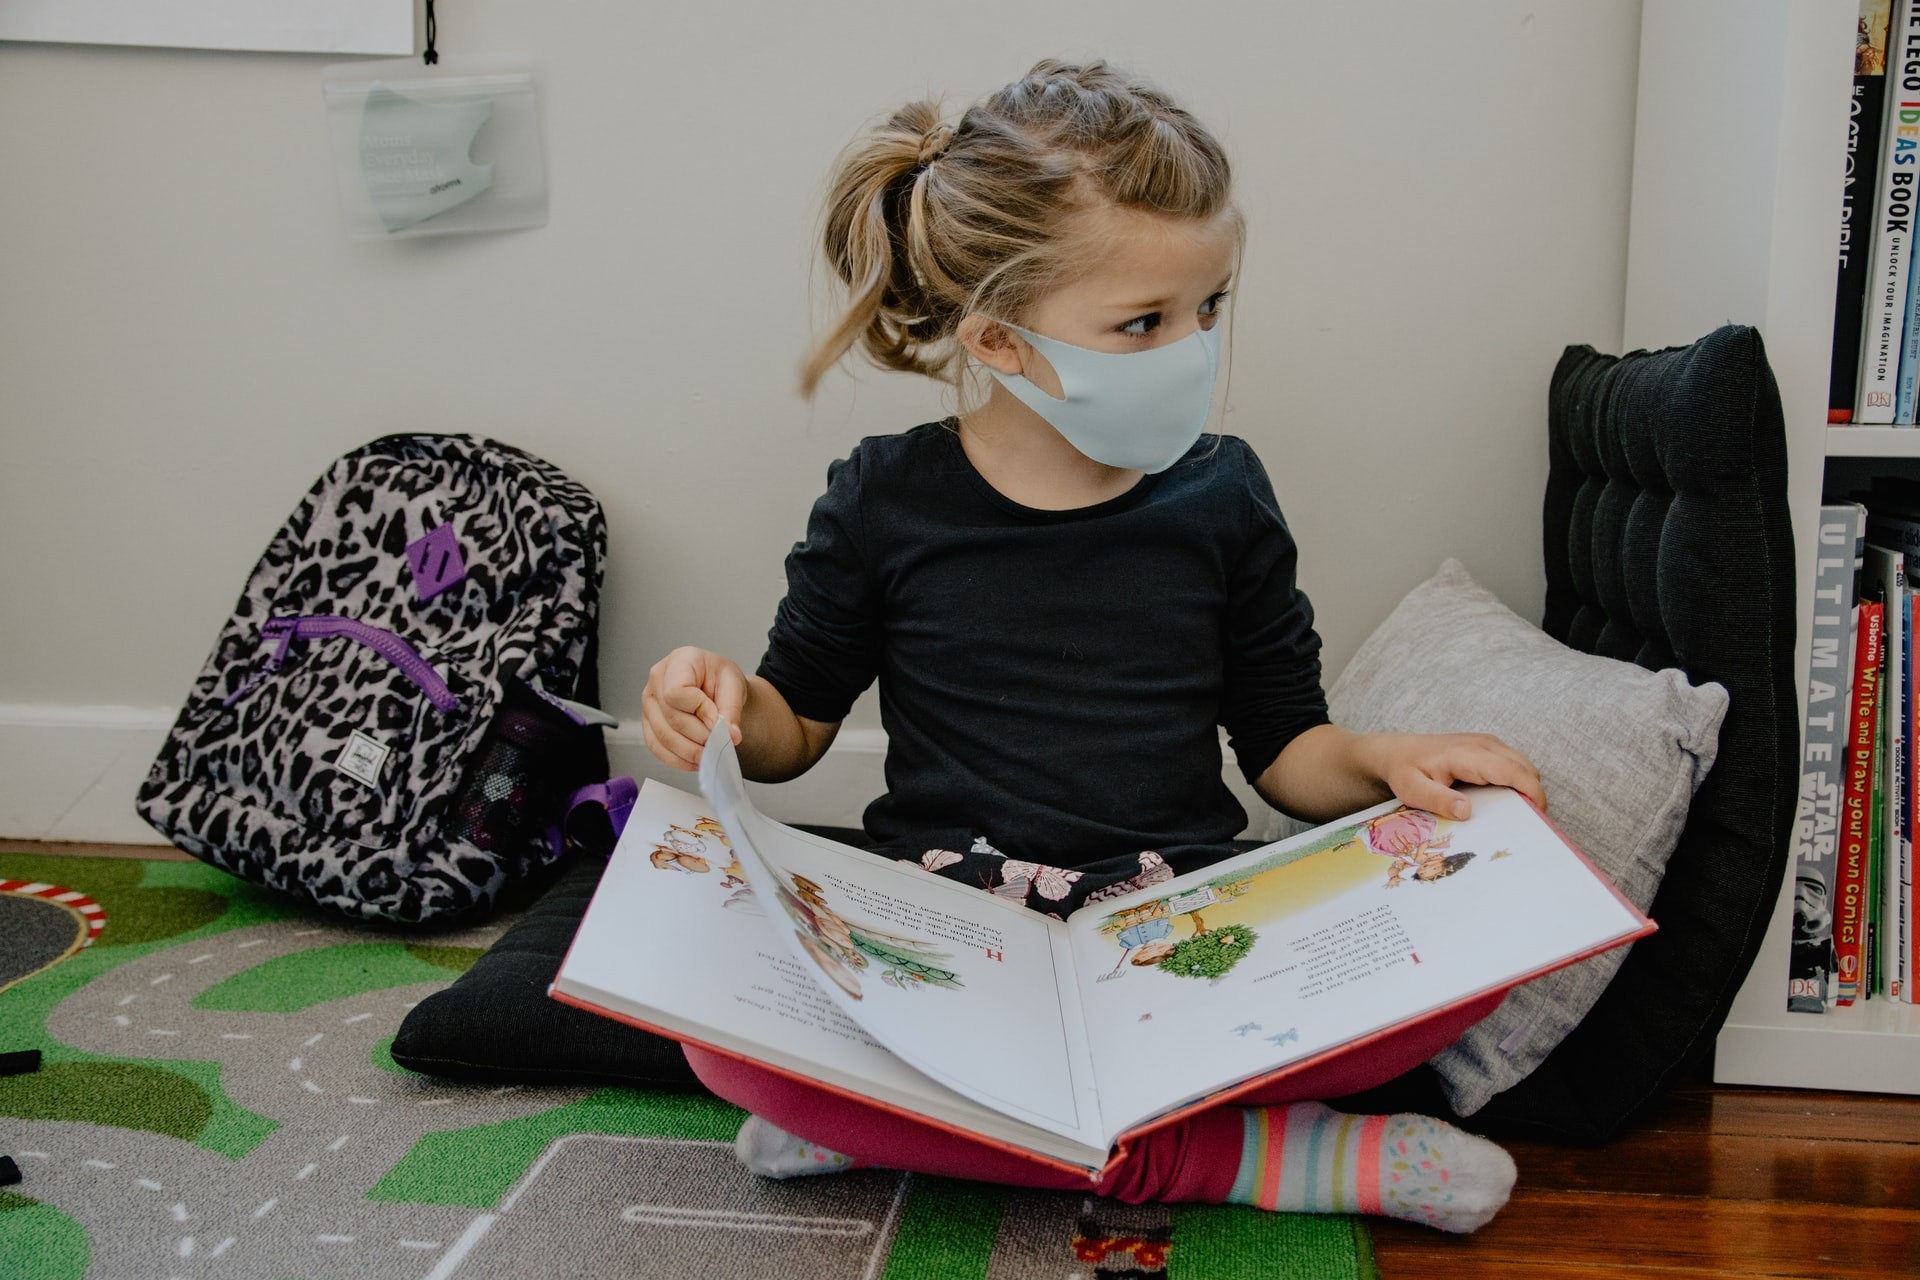 A young girl wearing a mask reads a book in a classroom.